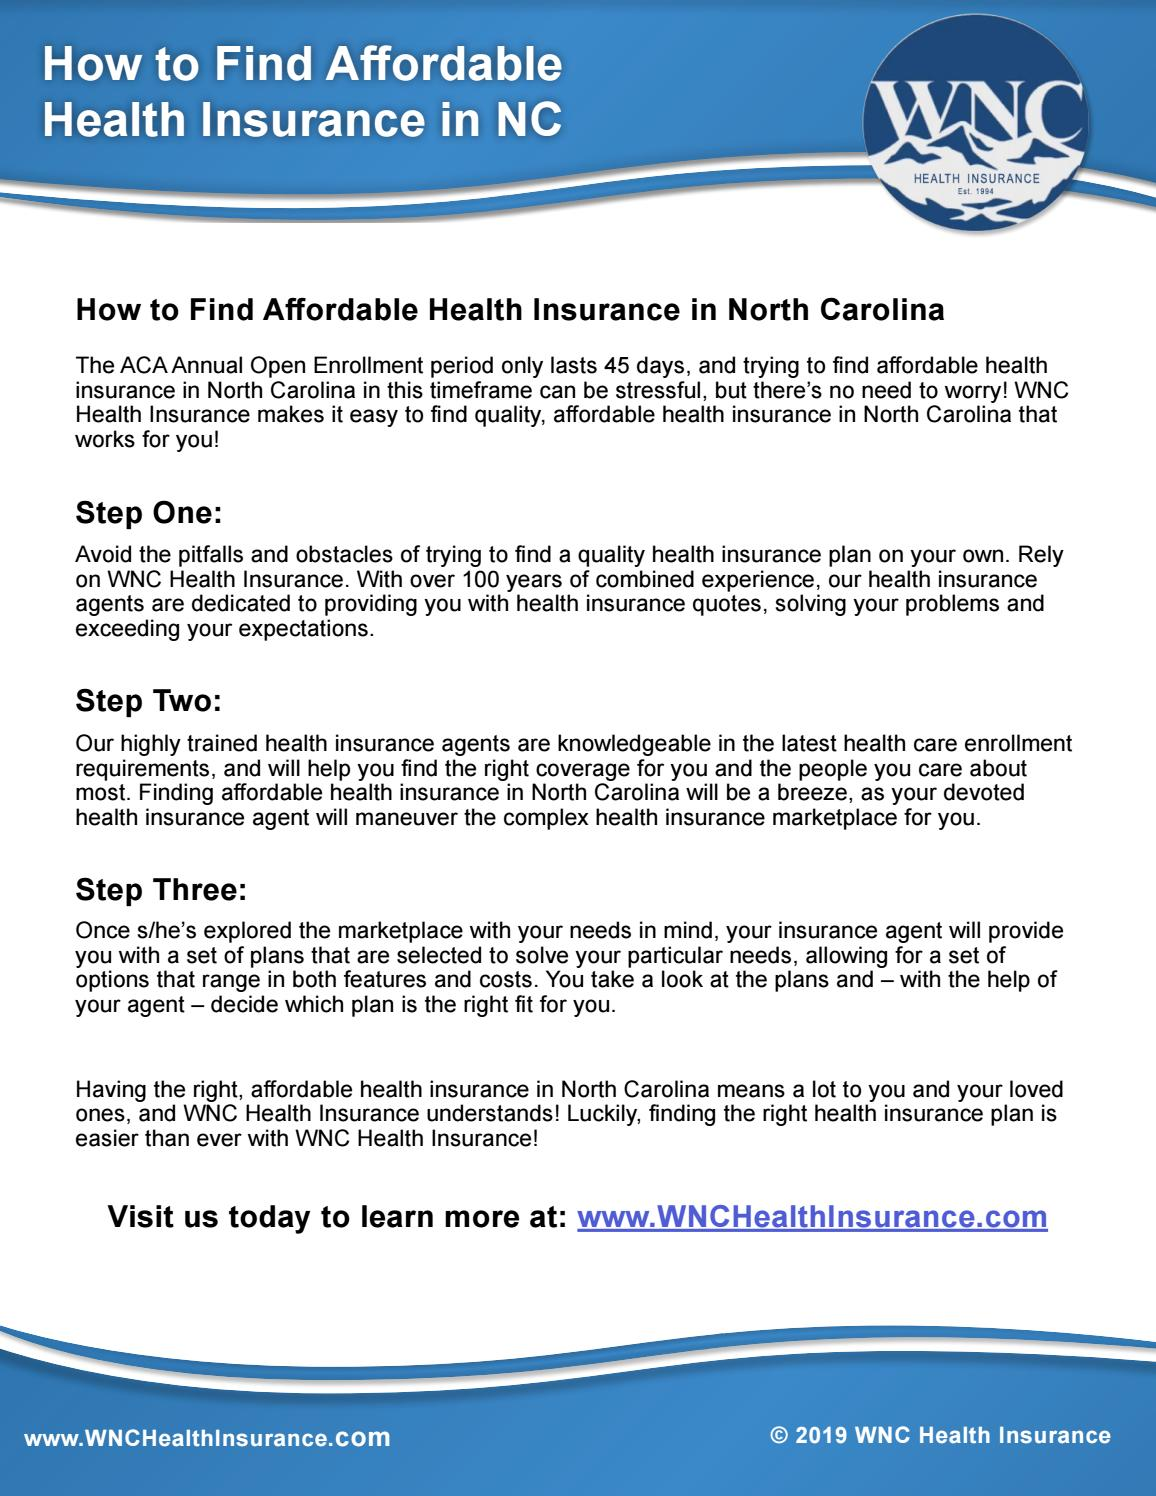 Nc Health Insurance >> How To Find Affordable Health Insurance In North Carolina By